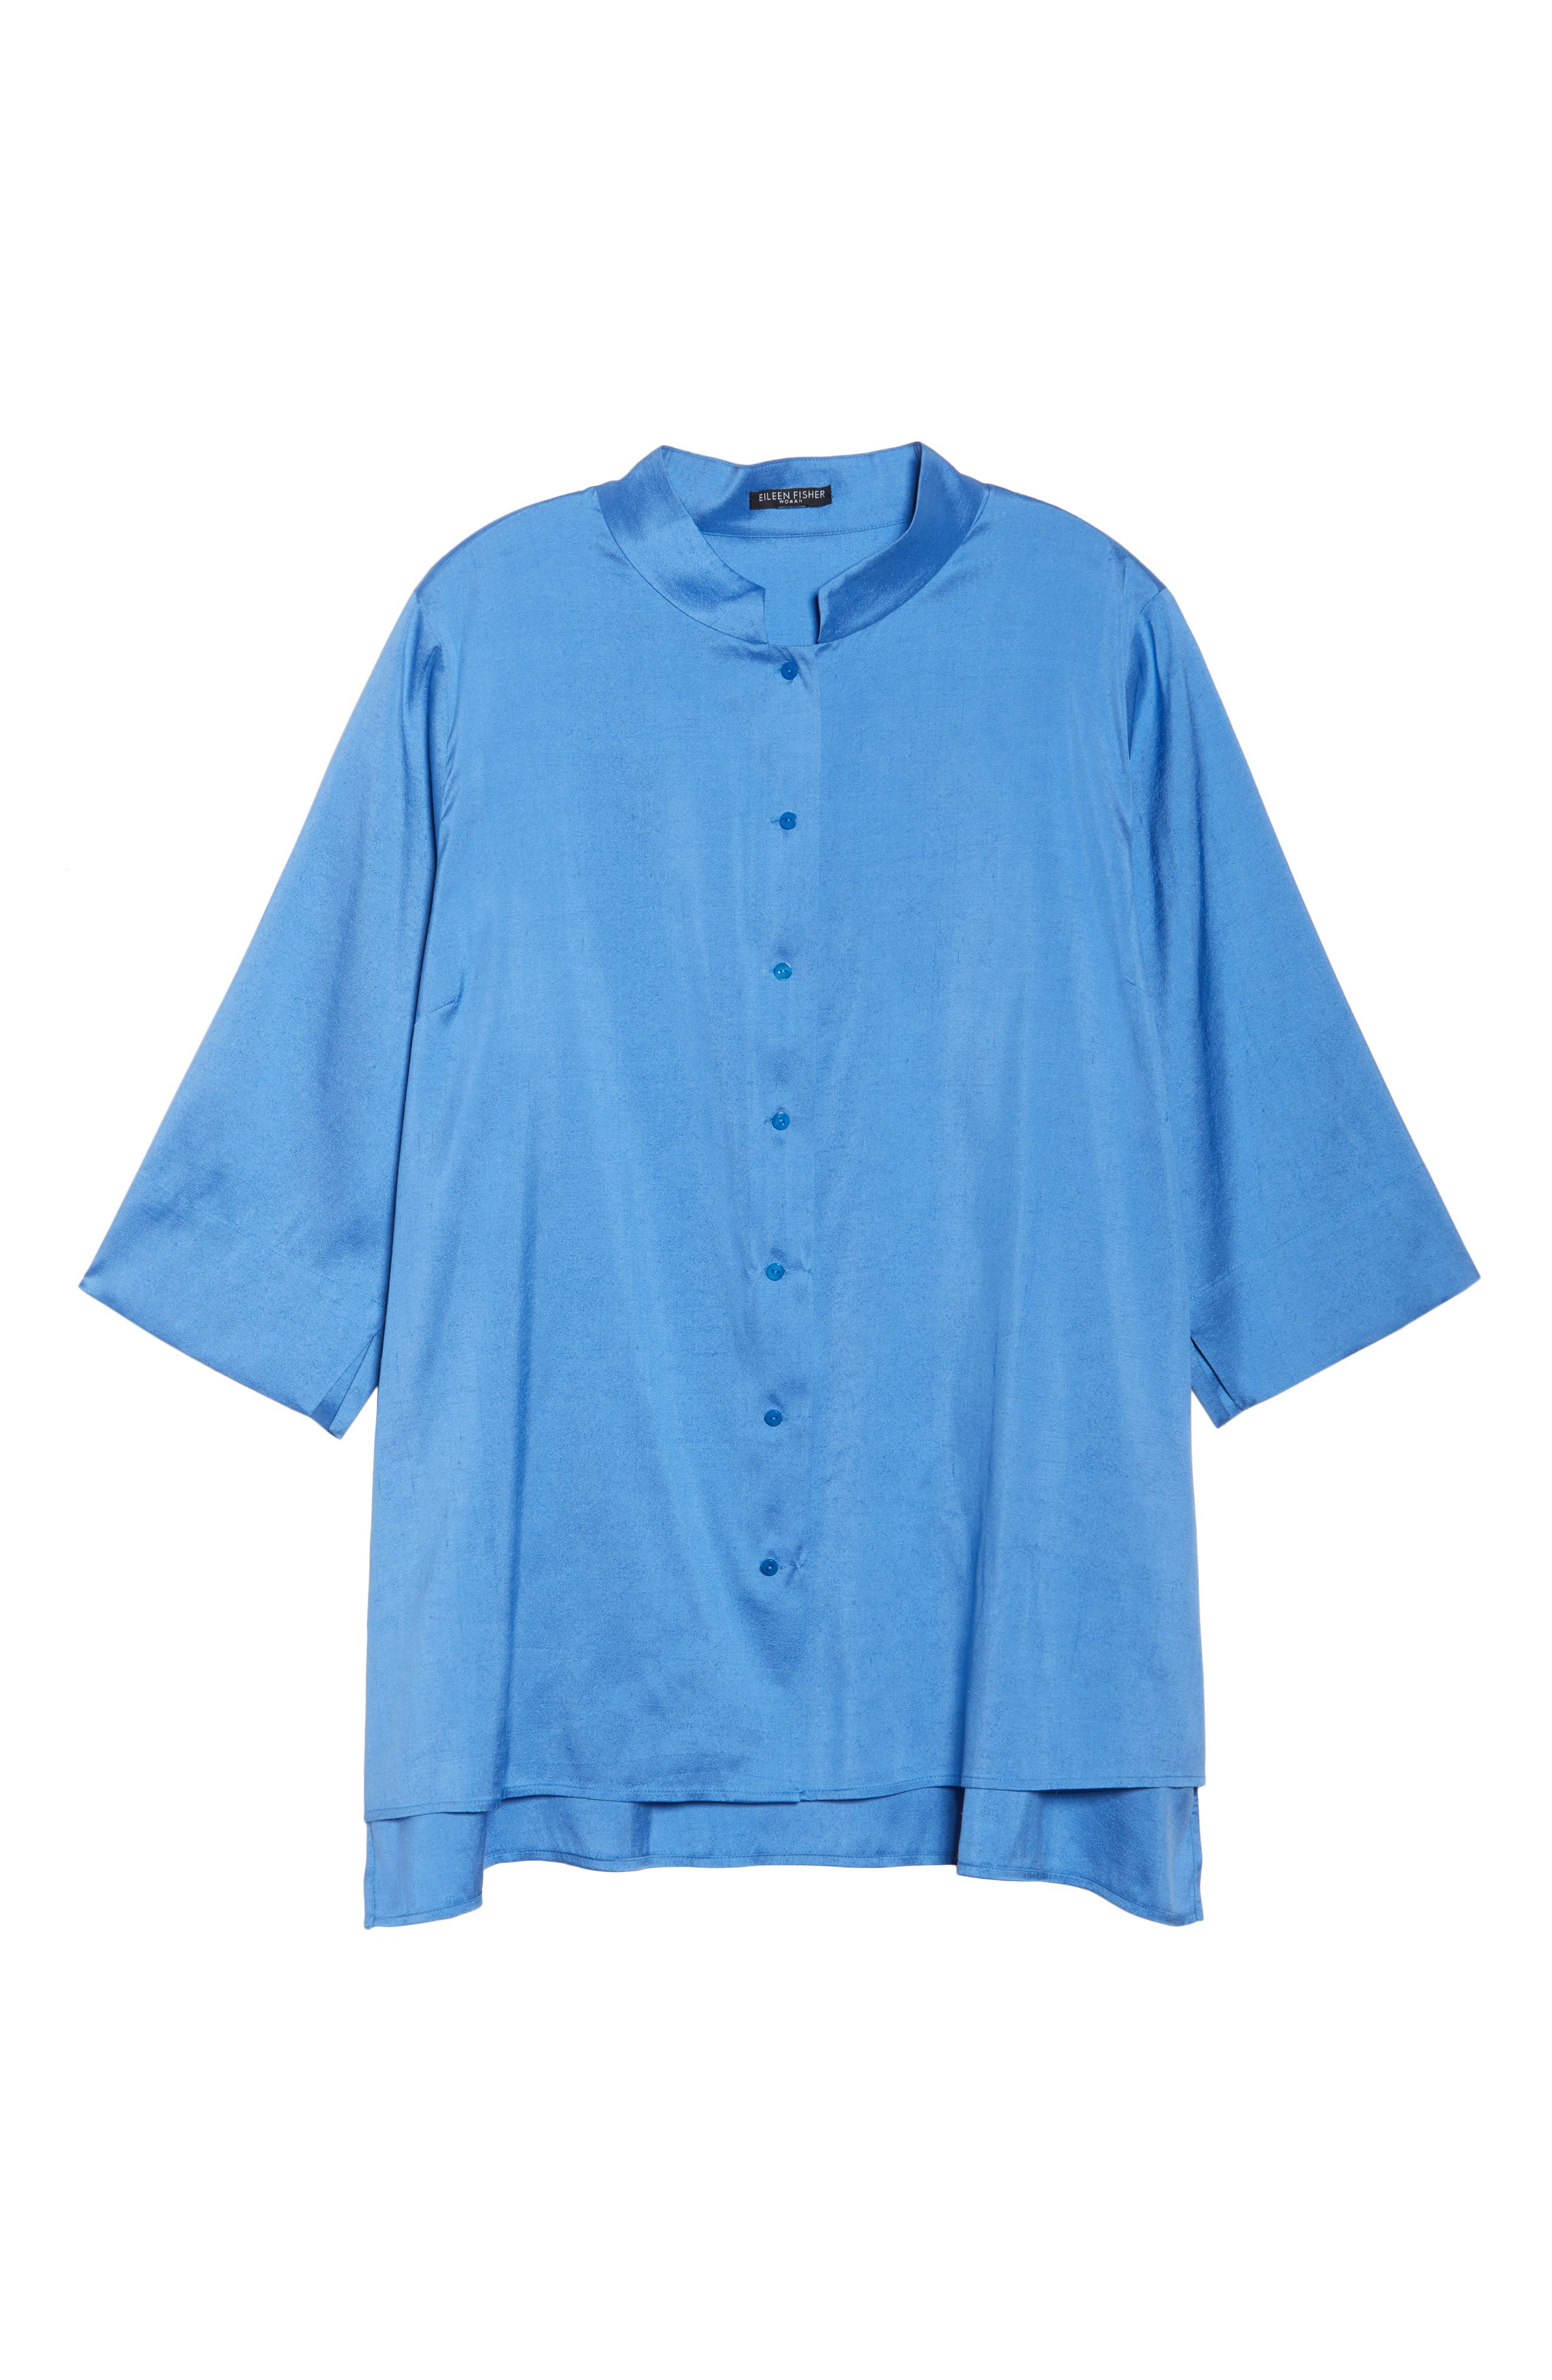 Notch Collar Shirt,                             Alternate thumbnail 6, color,                             Blue Bell